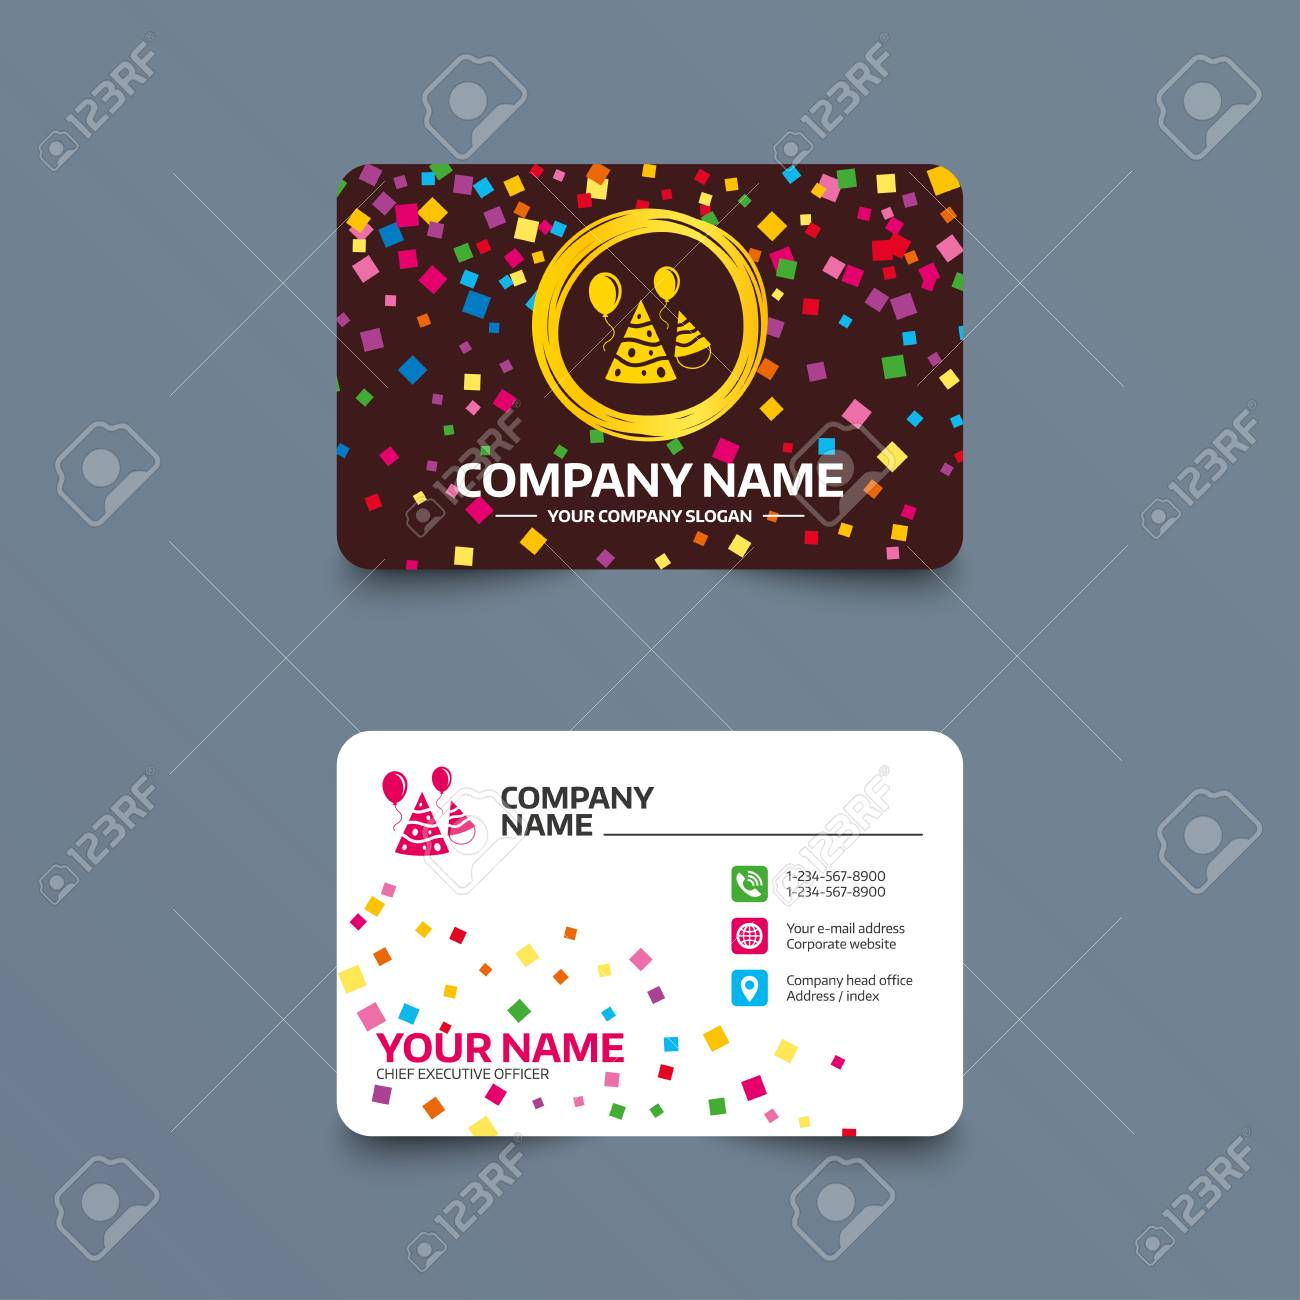 Business card template with confetti pieces party hat sign icon business card template with confetti pieces party hat sign icon birthday celebration symbol reheart Gallery